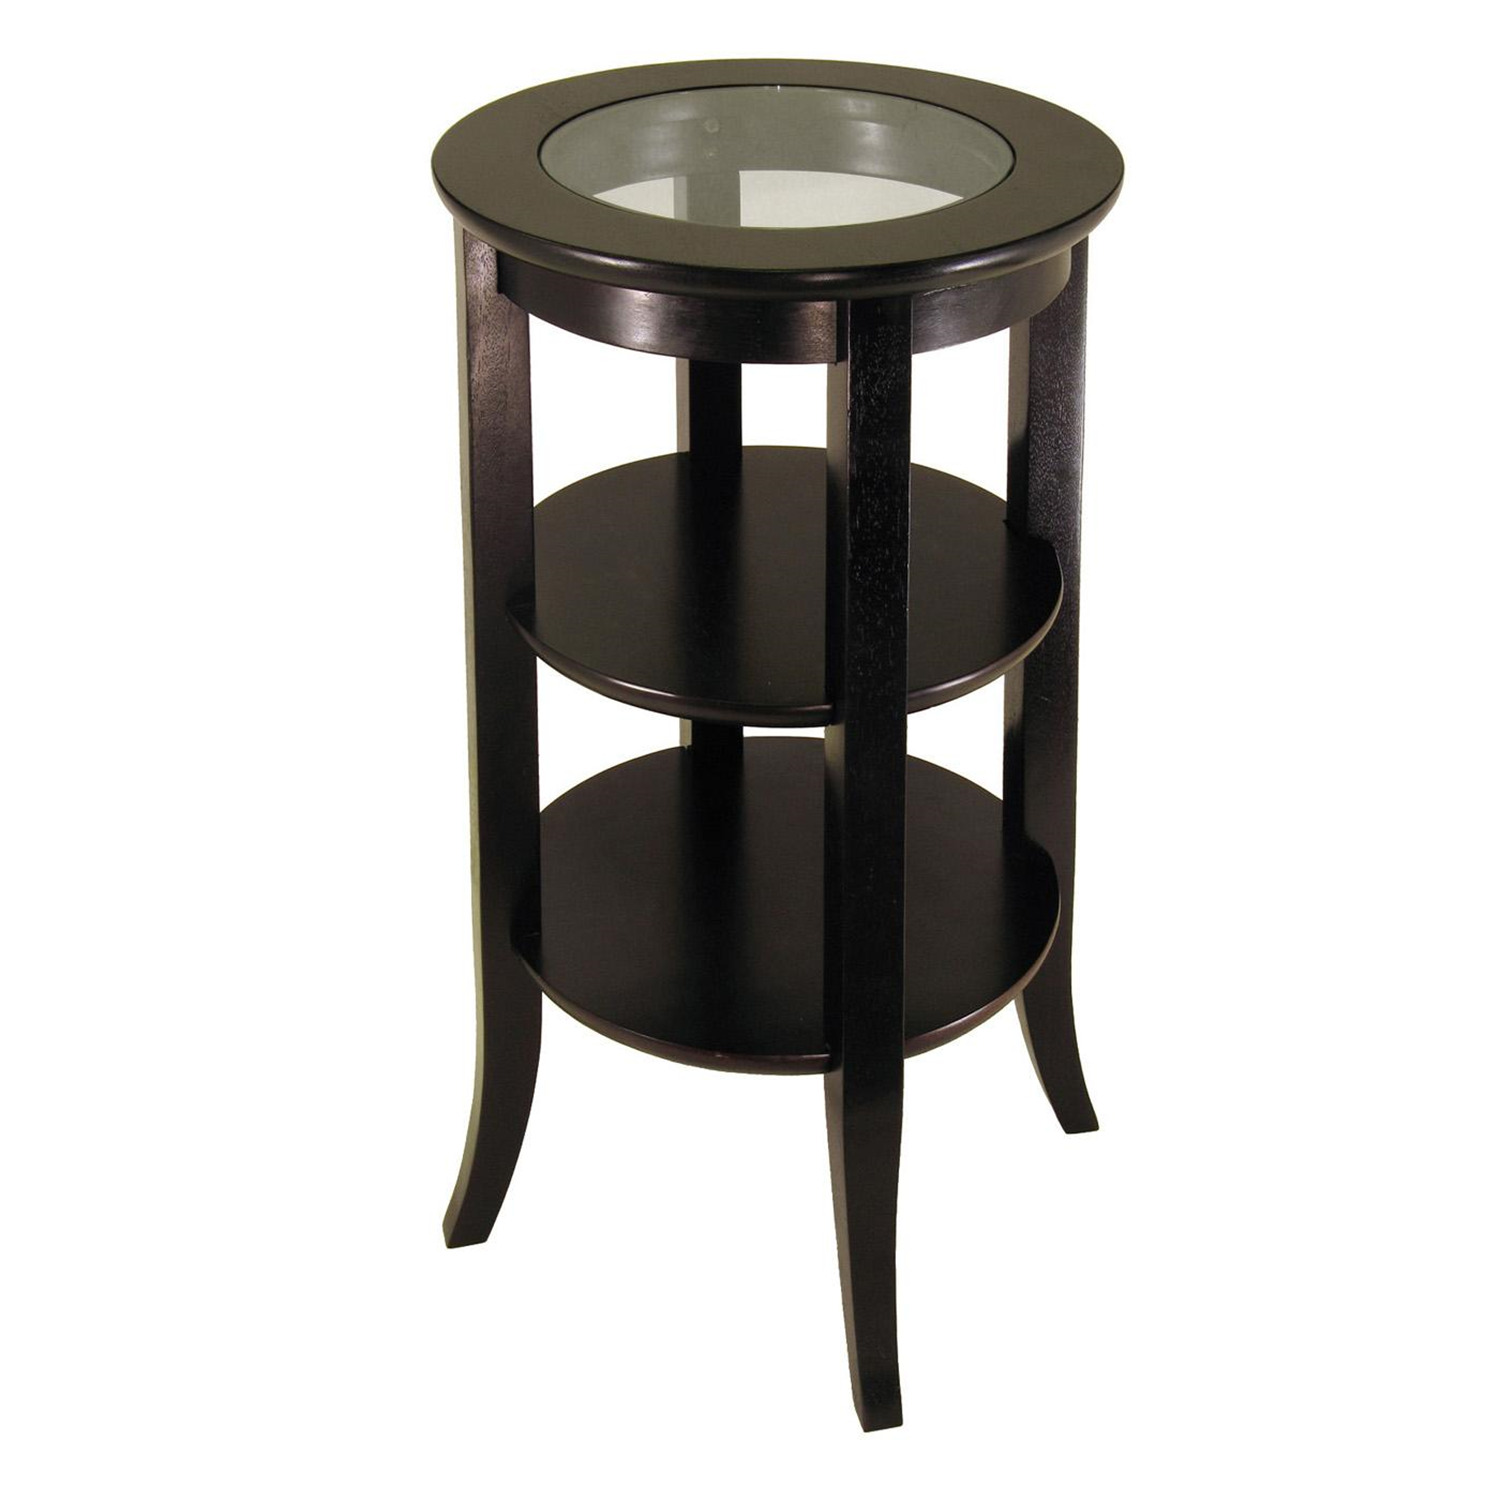 winsome wood genoa accent table inset glass two shelves ojcommerce. Black Bedroom Furniture Sets. Home Design Ideas